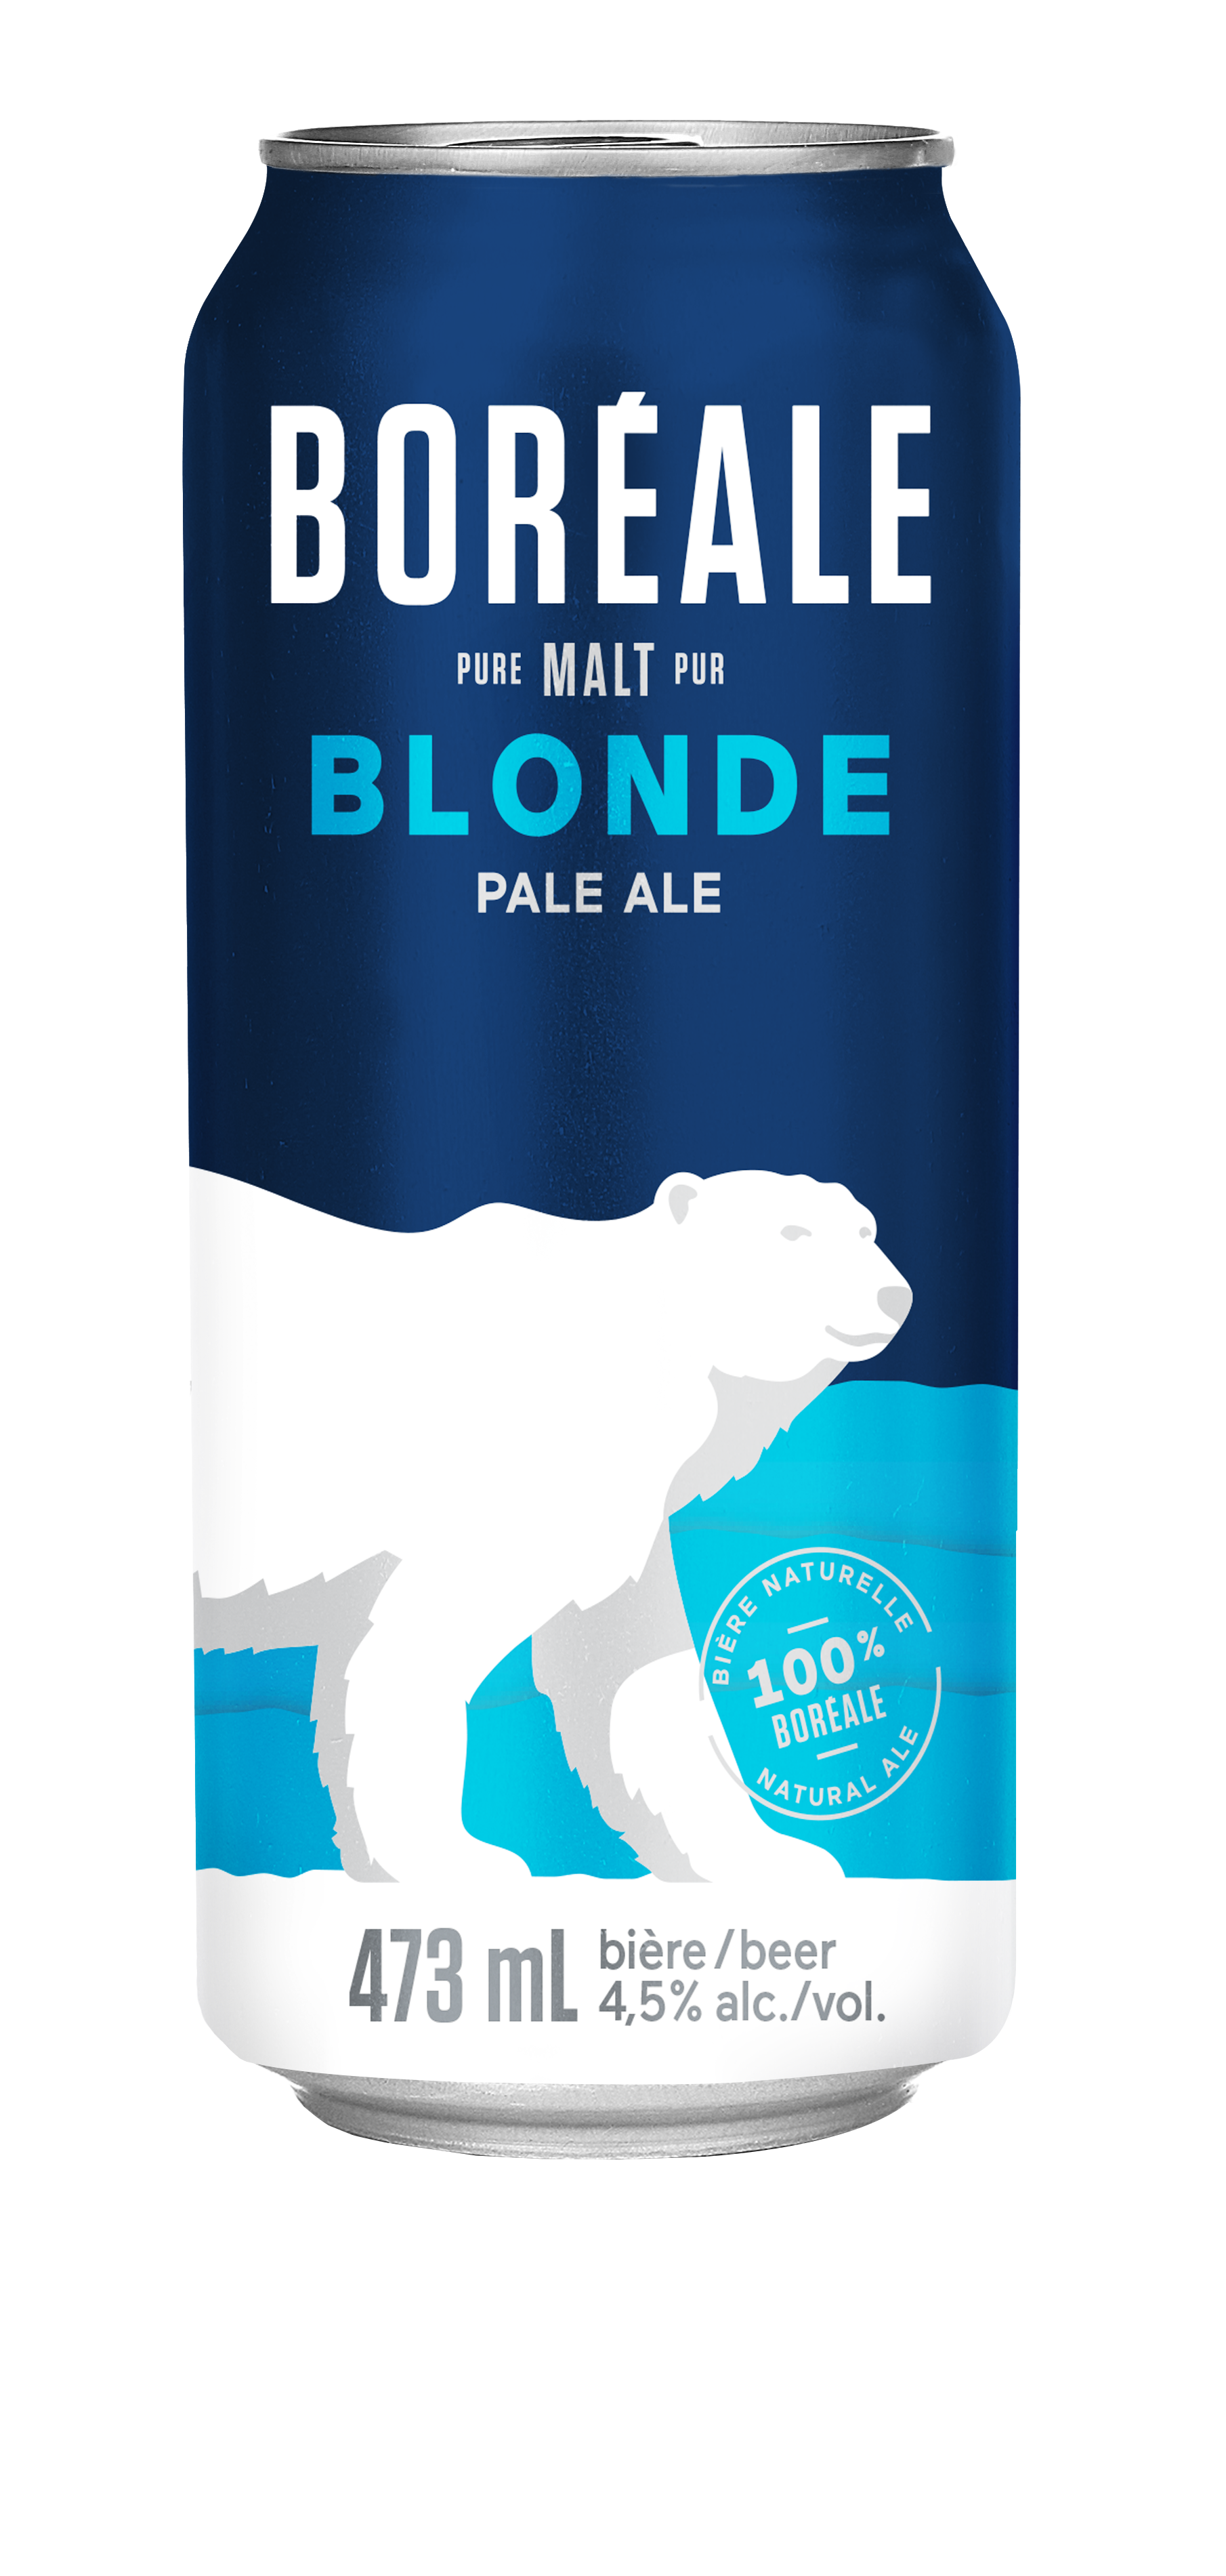 Bière Blonde de type Ale 473 mL - canette*_*Beer Blonde type Ale 473 mL - can*_*Cerveza Blonde 473 mL - Lata